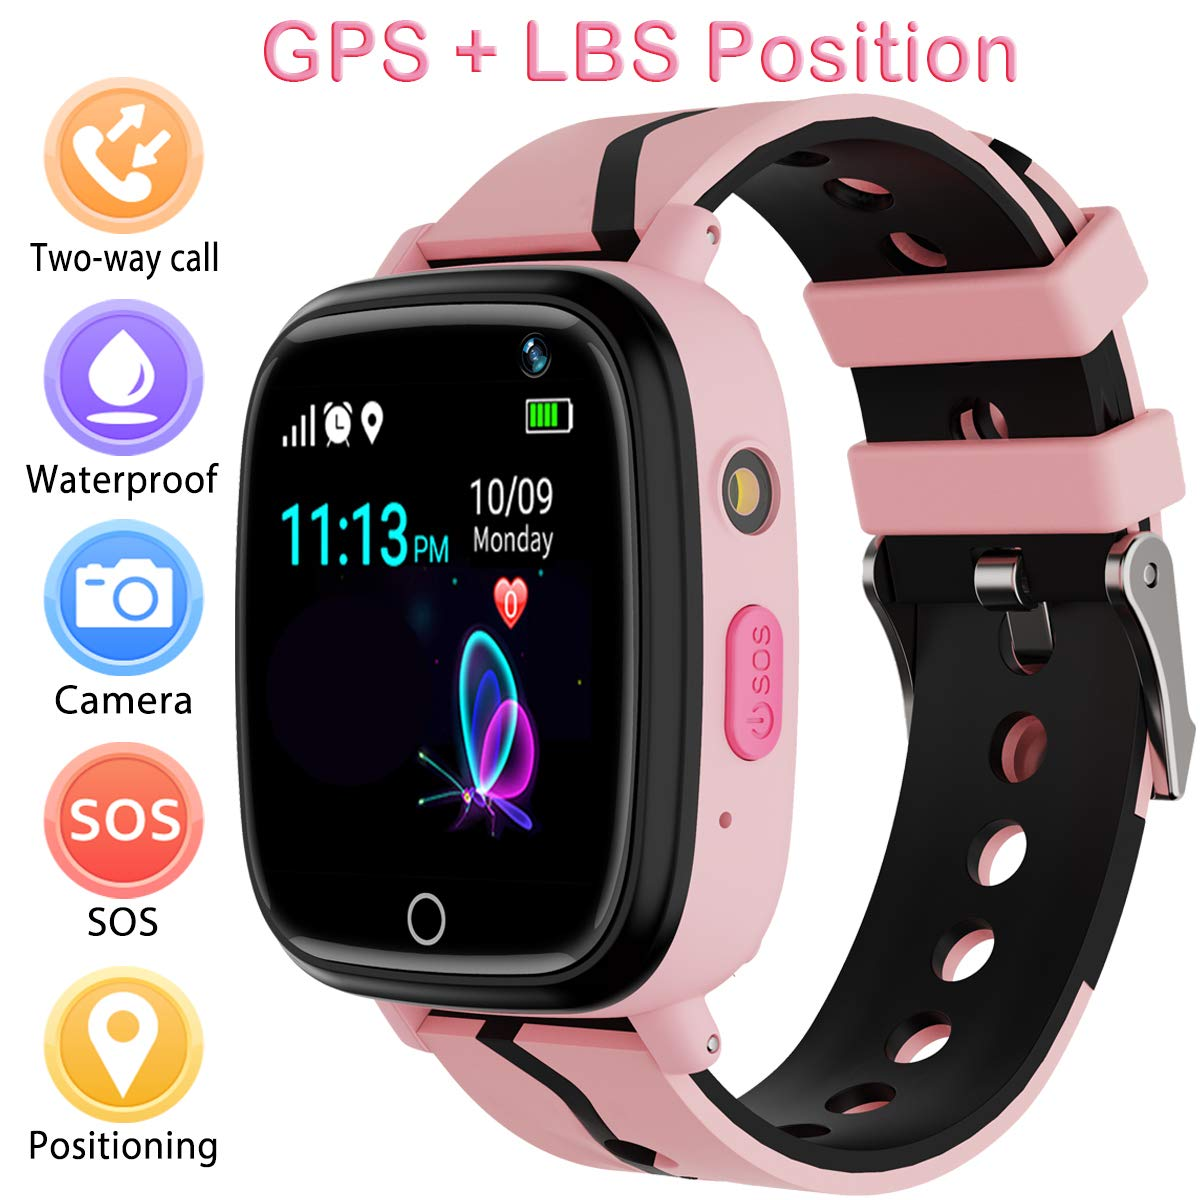 Kids Smart Watch with GPS Tracker,Kids Smartwatch Waterproof,HD Touch Screen Pedometer Fitness Tracker Camera,Watch Wrist Digital Watch Android Phone,Sport Smartwatch for Girls Boys iOS & Android by YENISEY